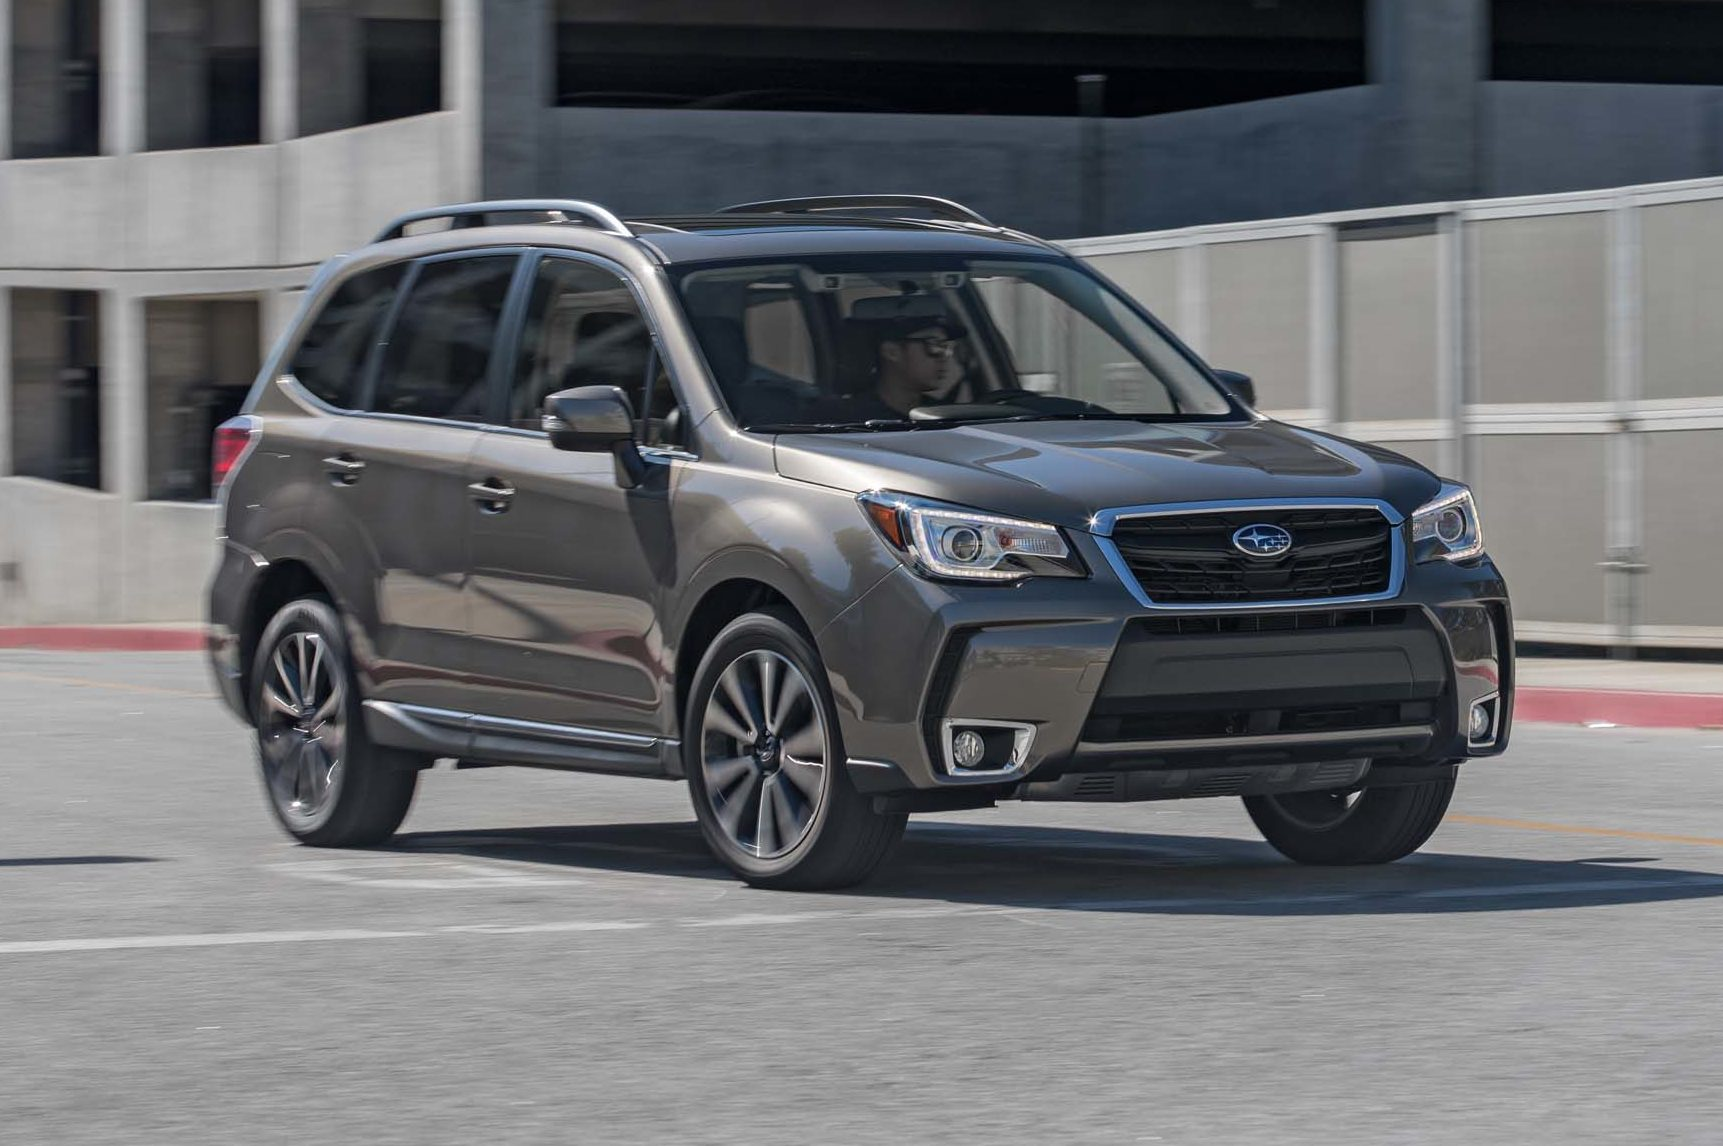 subaru forester 2 0xt touring 2017 primera prueba motor trend en espa ol. Black Bedroom Furniture Sets. Home Design Ideas